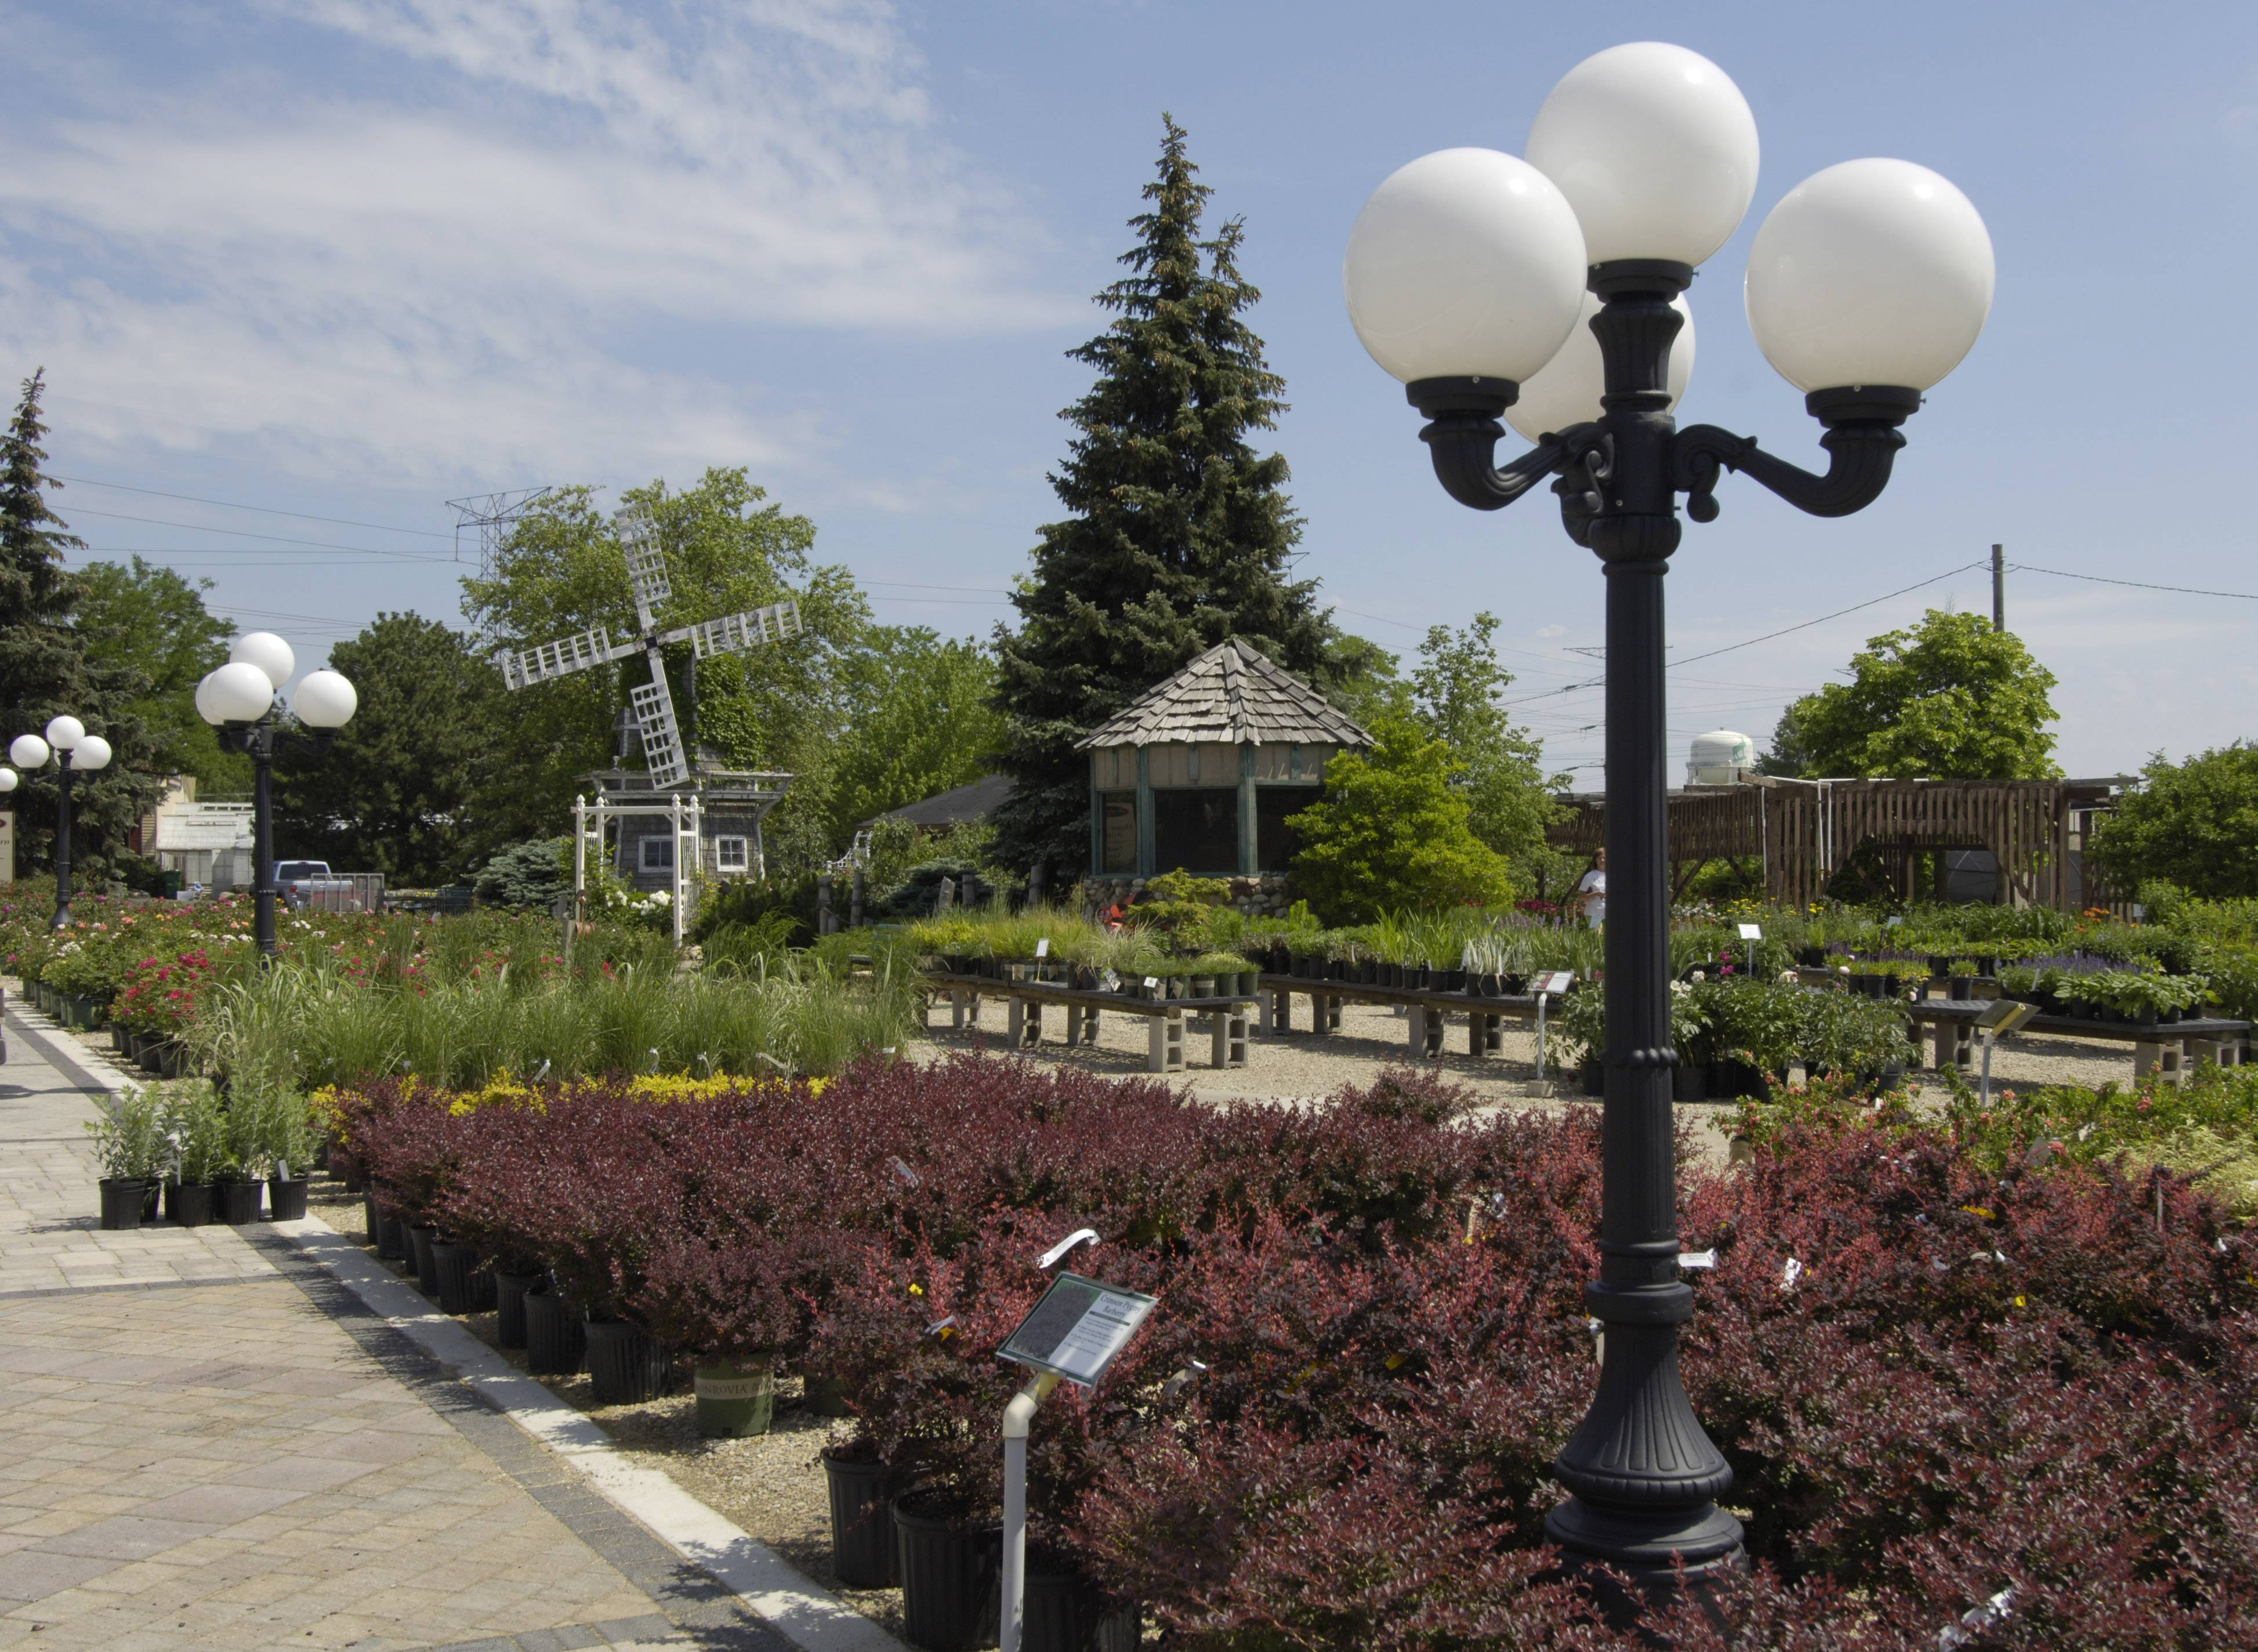 Berthold's Floral, Gift and Garden Center in Elk Grove Village, which has been in operation since 1948, will close in coming weeks to make way for a new headquarters for the village's public works department